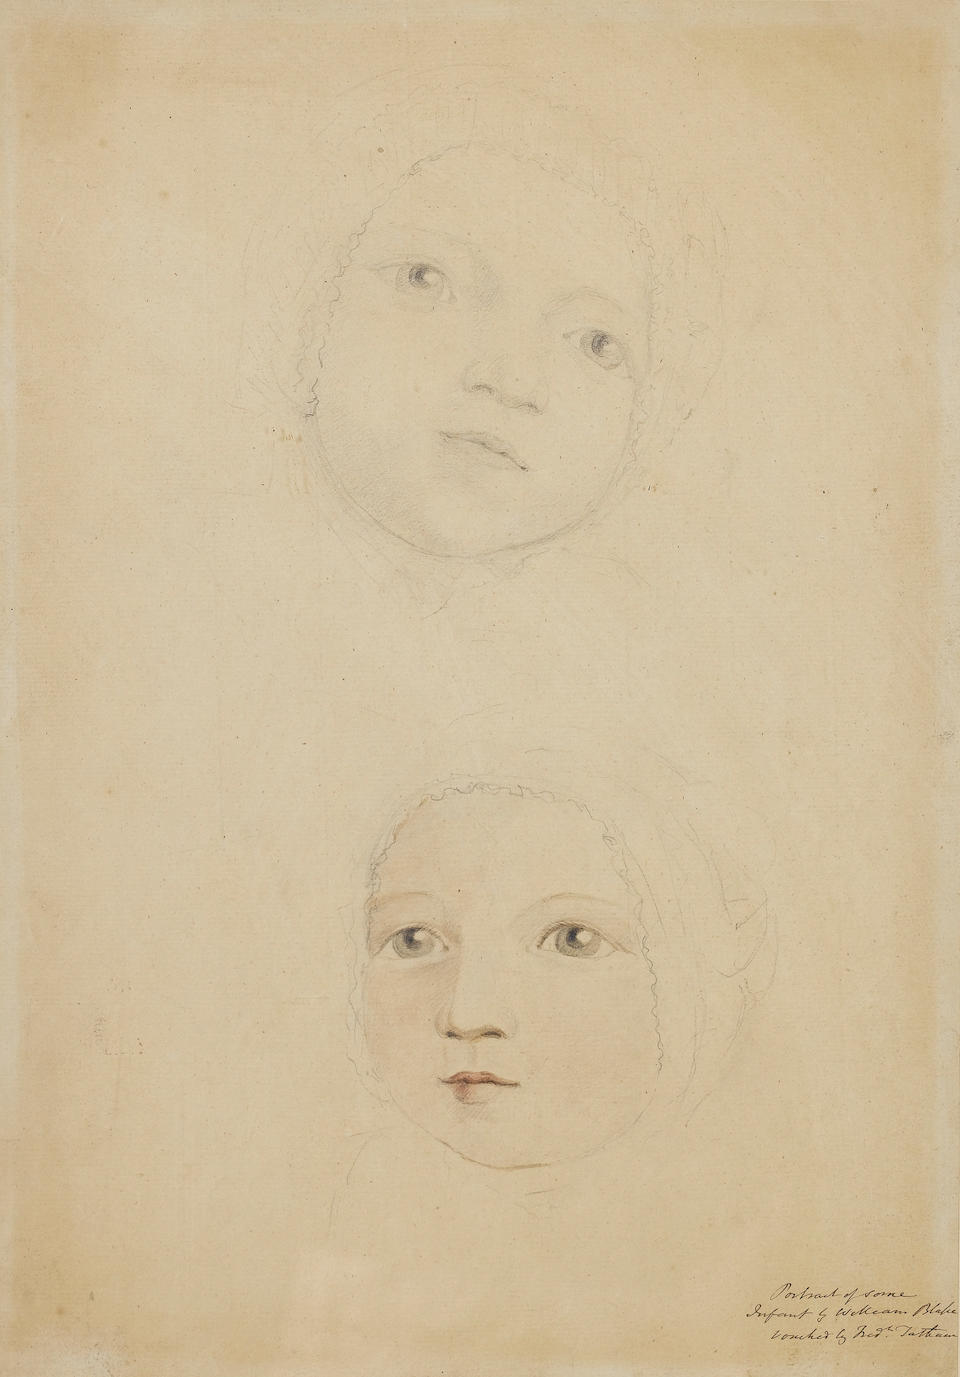 William Blake (British, 1757-1827) Two studies of a baby's head, possibly a member of the Linnell family